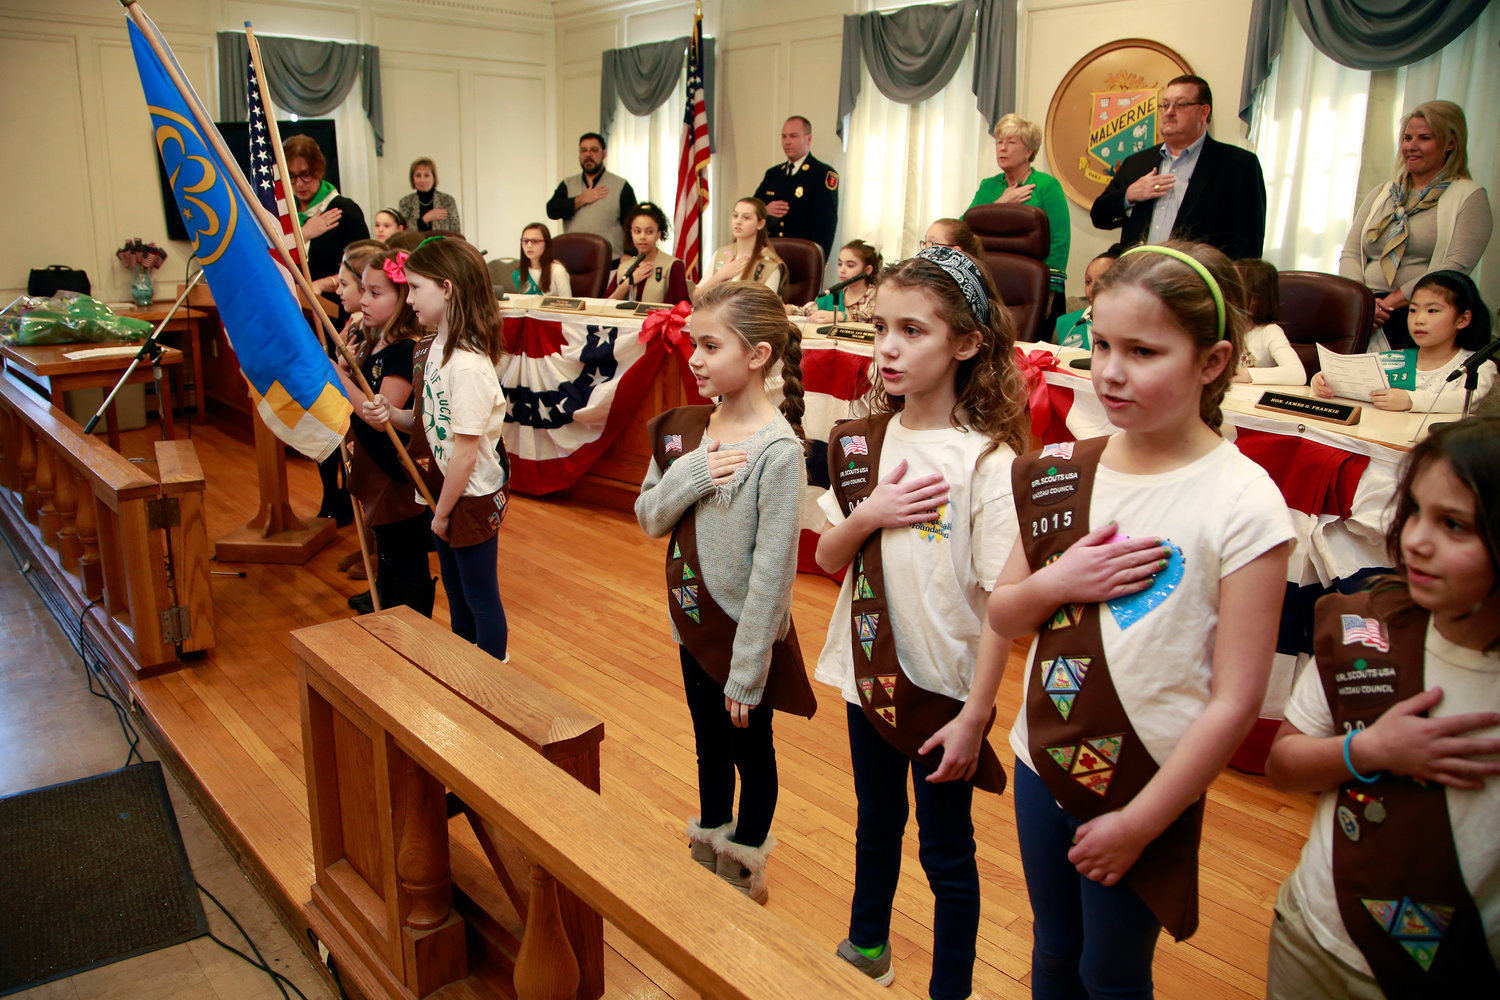 Members of Brownie Troop 2015 in Malverne, taking part in Girl Scouts Government Day on March 9, recited the Pledge of Allegiance at Village Hall.